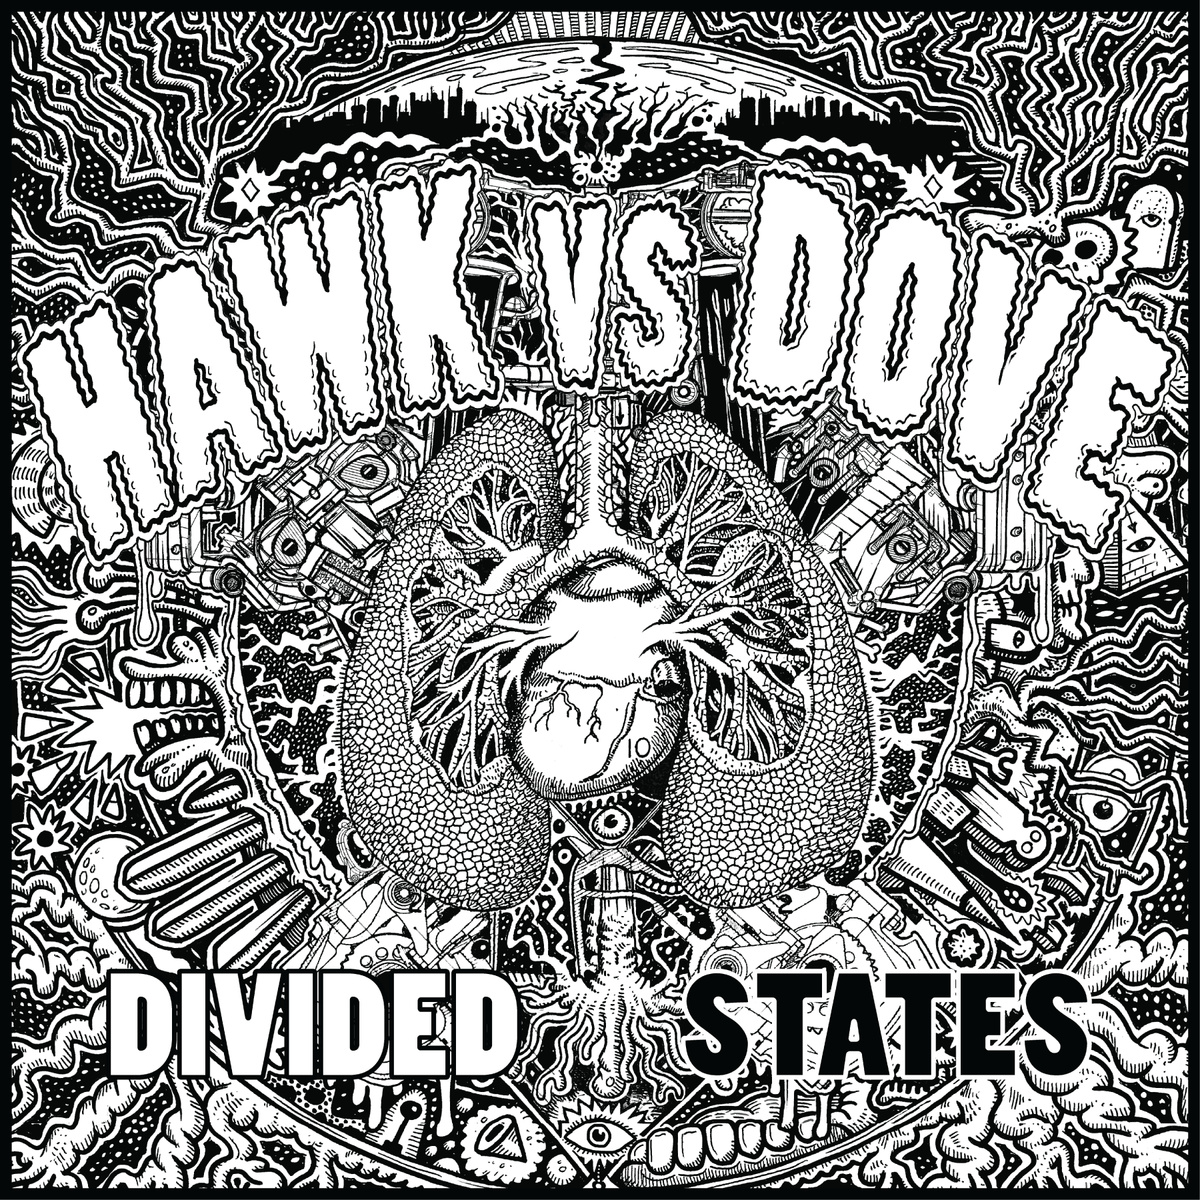 hawk vs dove divided states